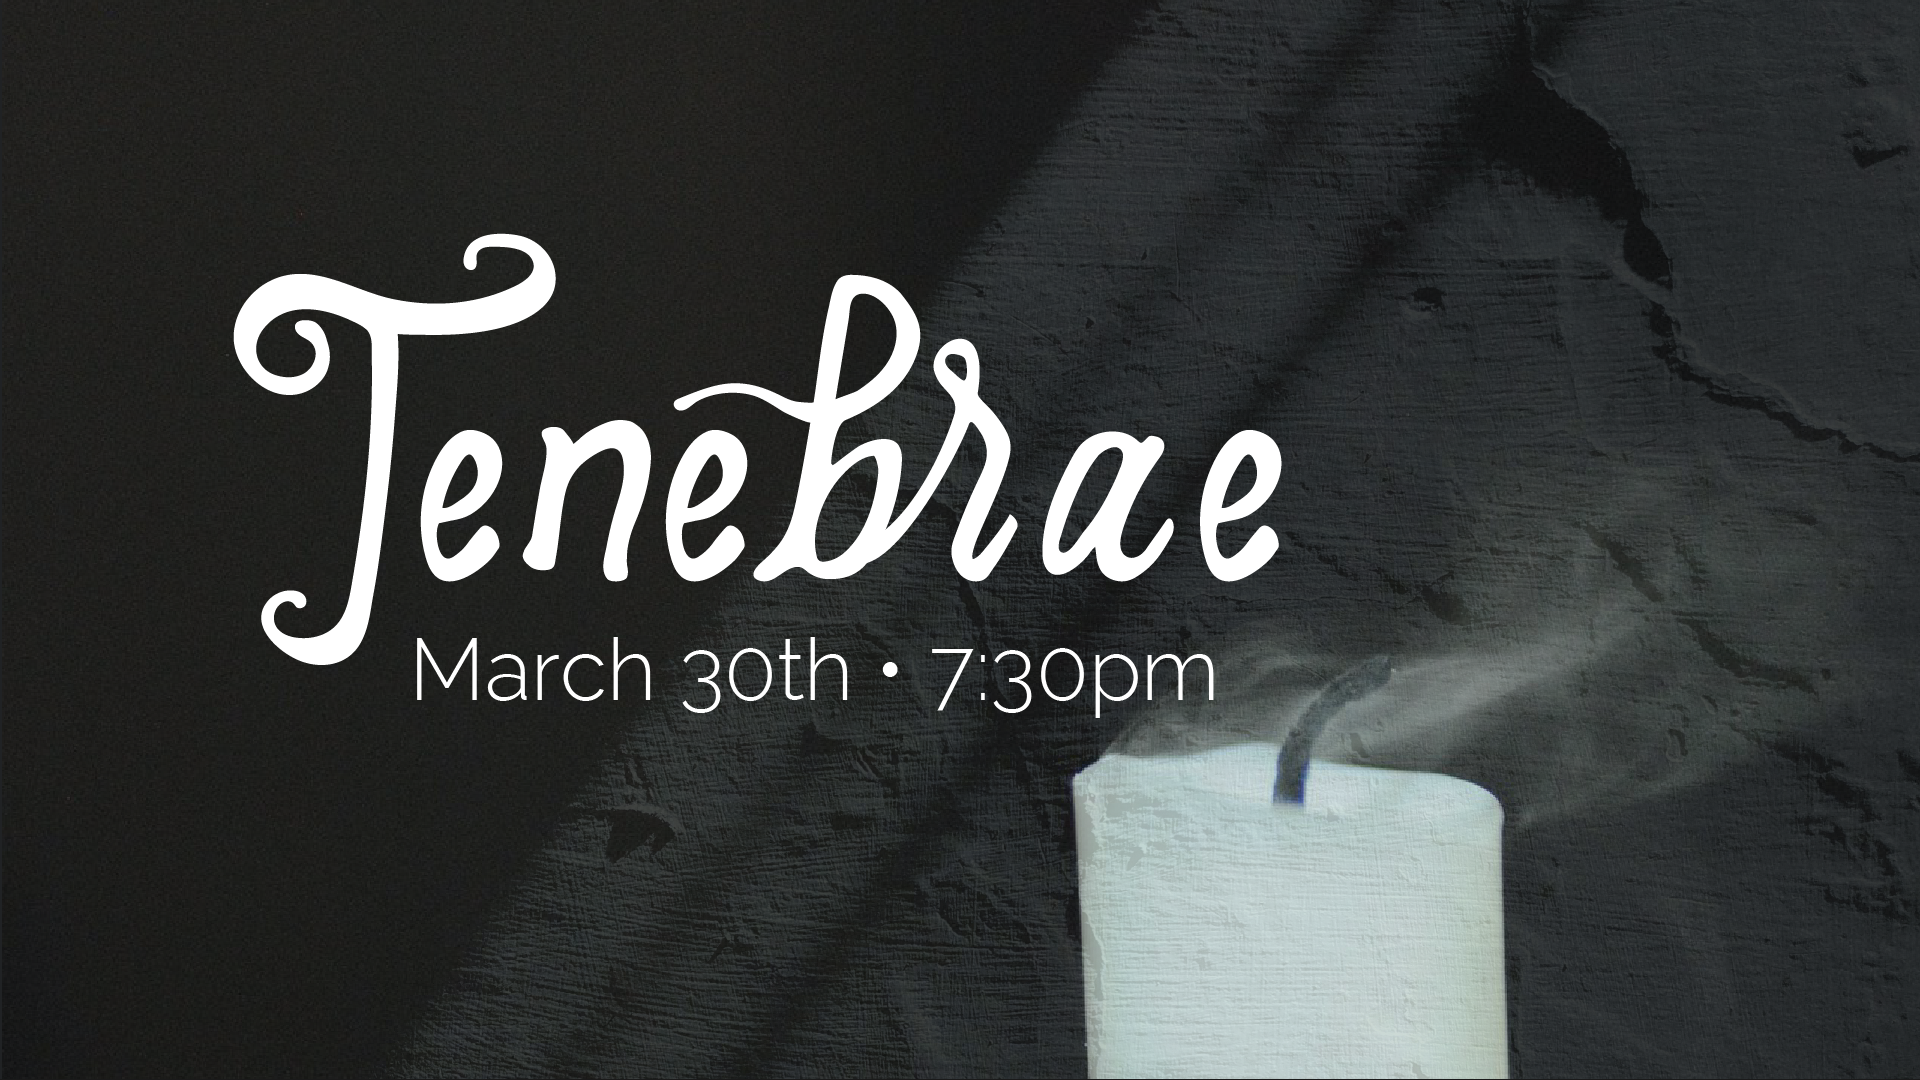 Tenebrae (Good Friday) Service on March 30th at 7:30pm